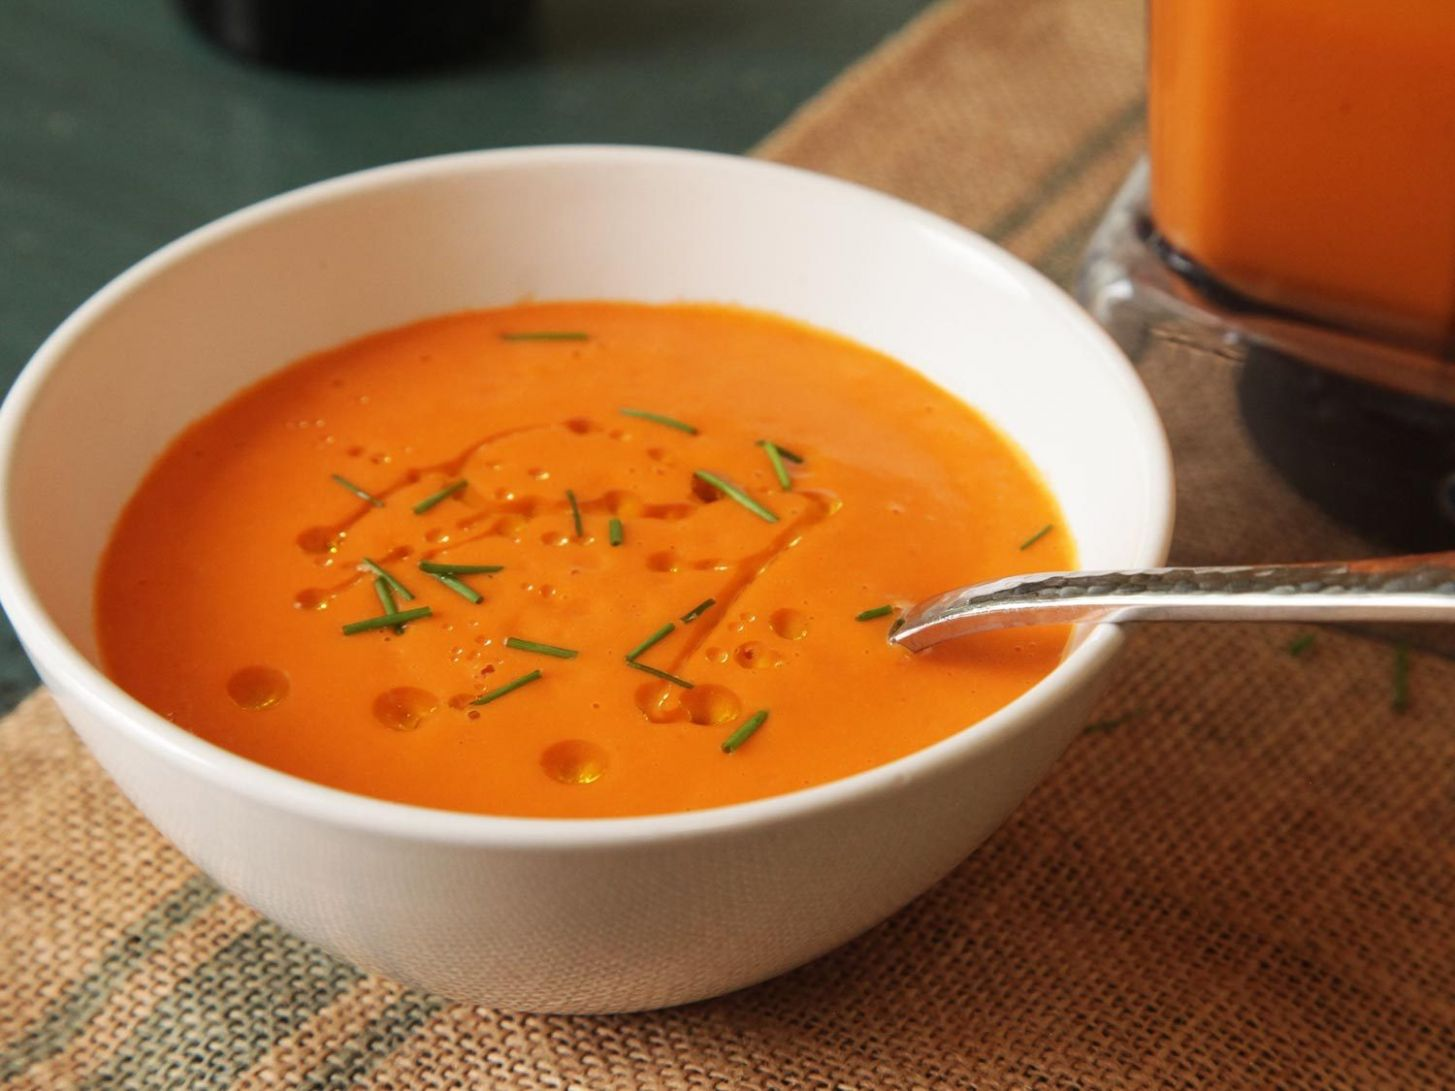 No-Cook Blender Tomato Soup Recipe - Soup Recipes You Can Make In A Blender